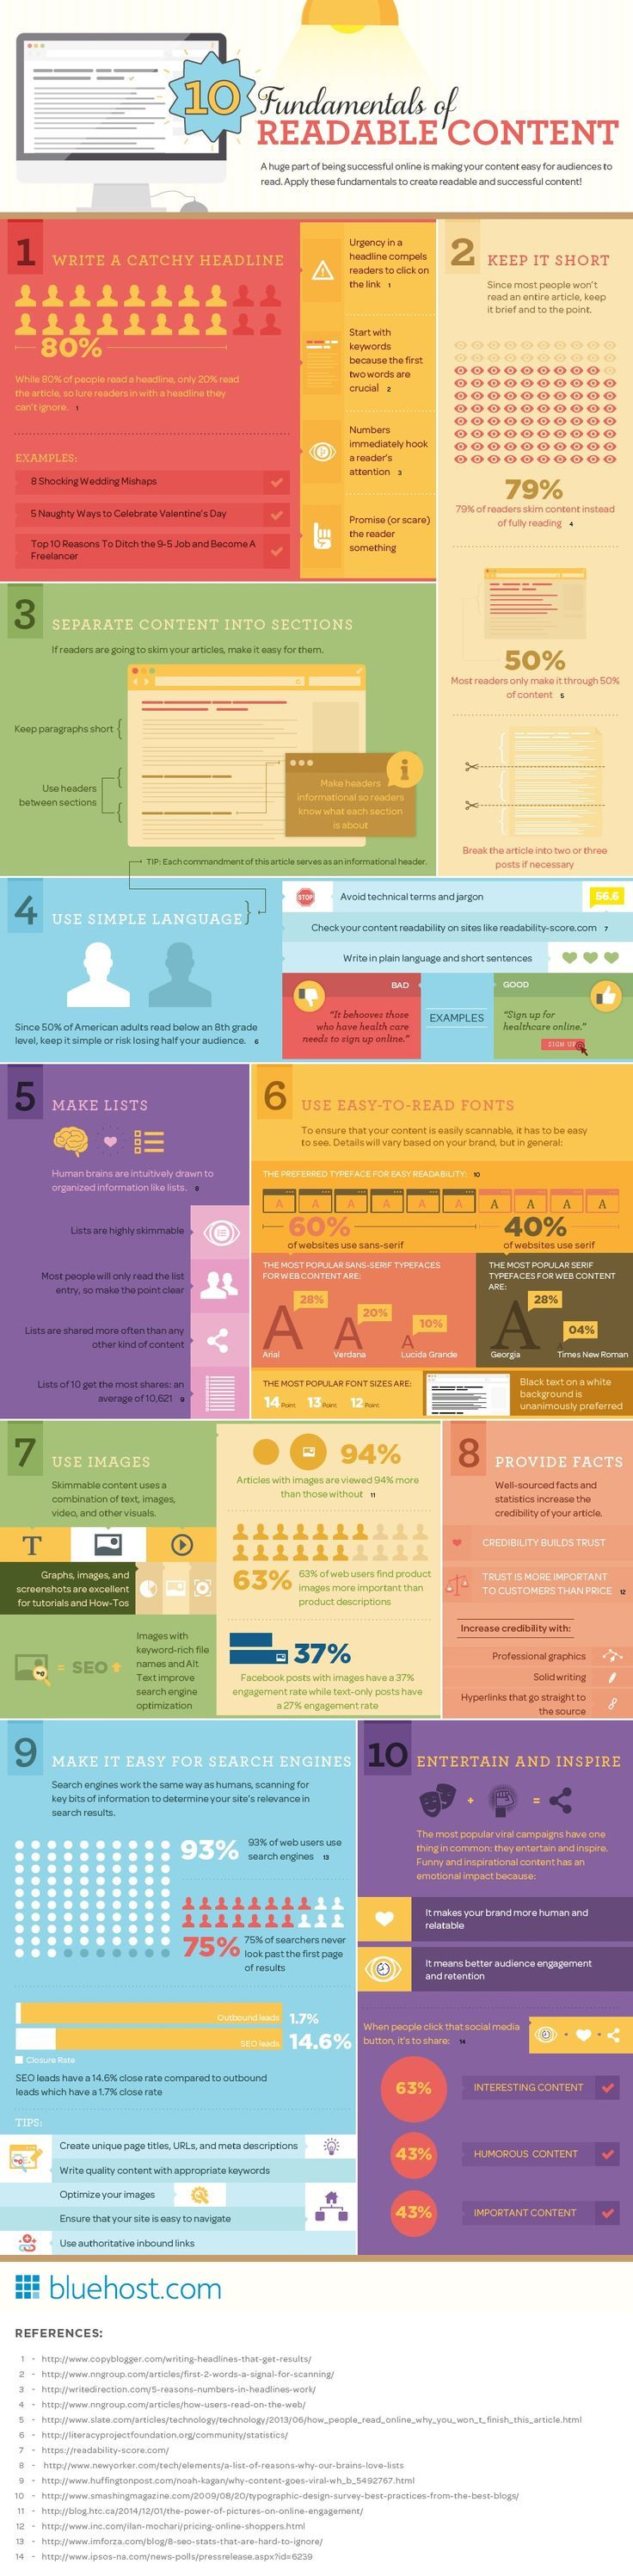 Content Marketing Tips: 10 Fundamentals Of Readable Content - infographic